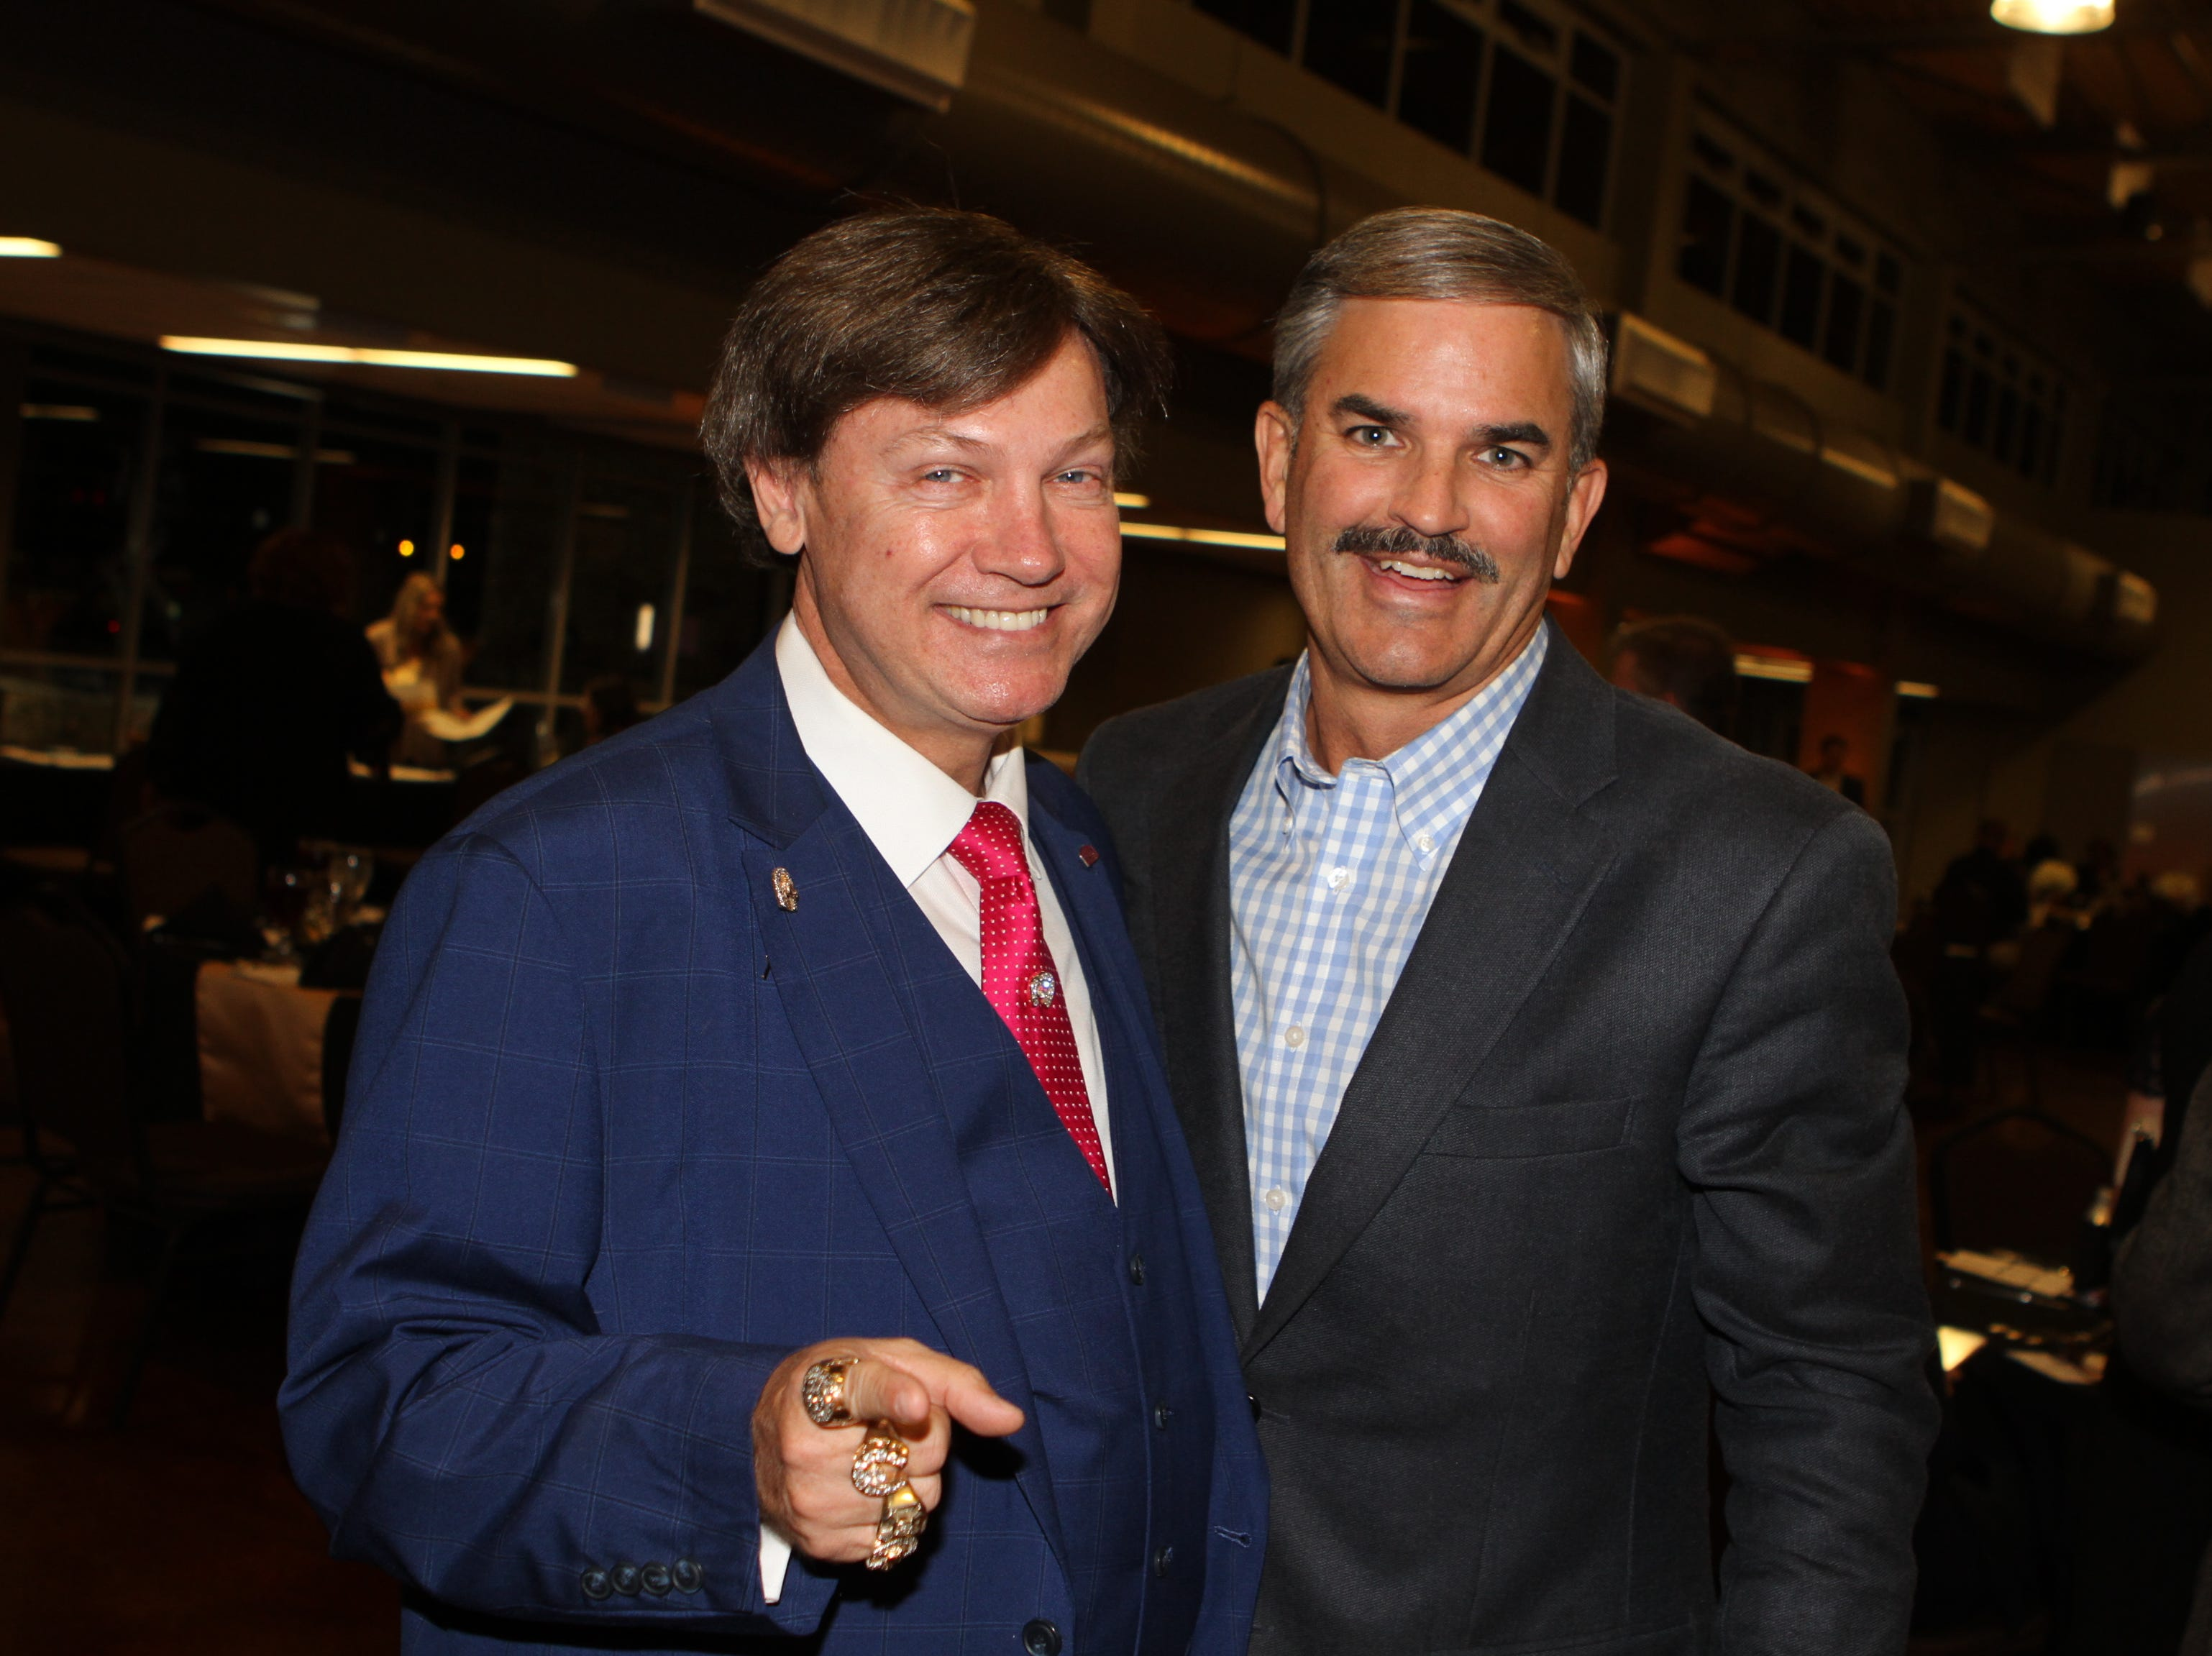 Kevin Kennedy and Charlie Koon at CMC Education Foundation's annual fundraiser Vision to Reality on Friday, November 2, 2018